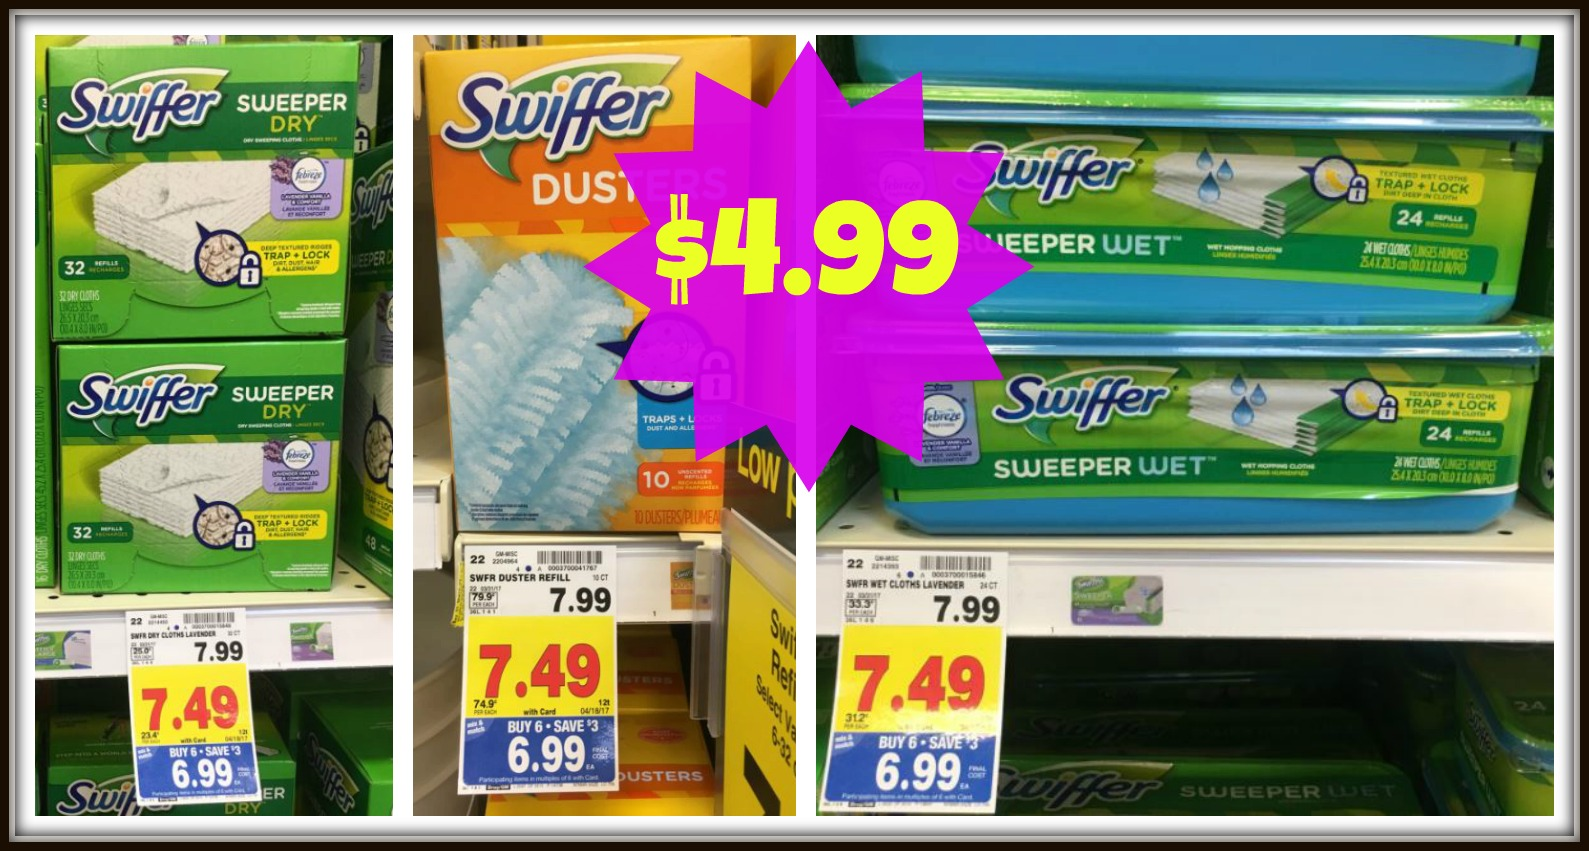 image regarding Swiffer Coupons Printable identify Contemporary $2.00 Swiffer Discount codes Refills Just $4.99 with Kroger